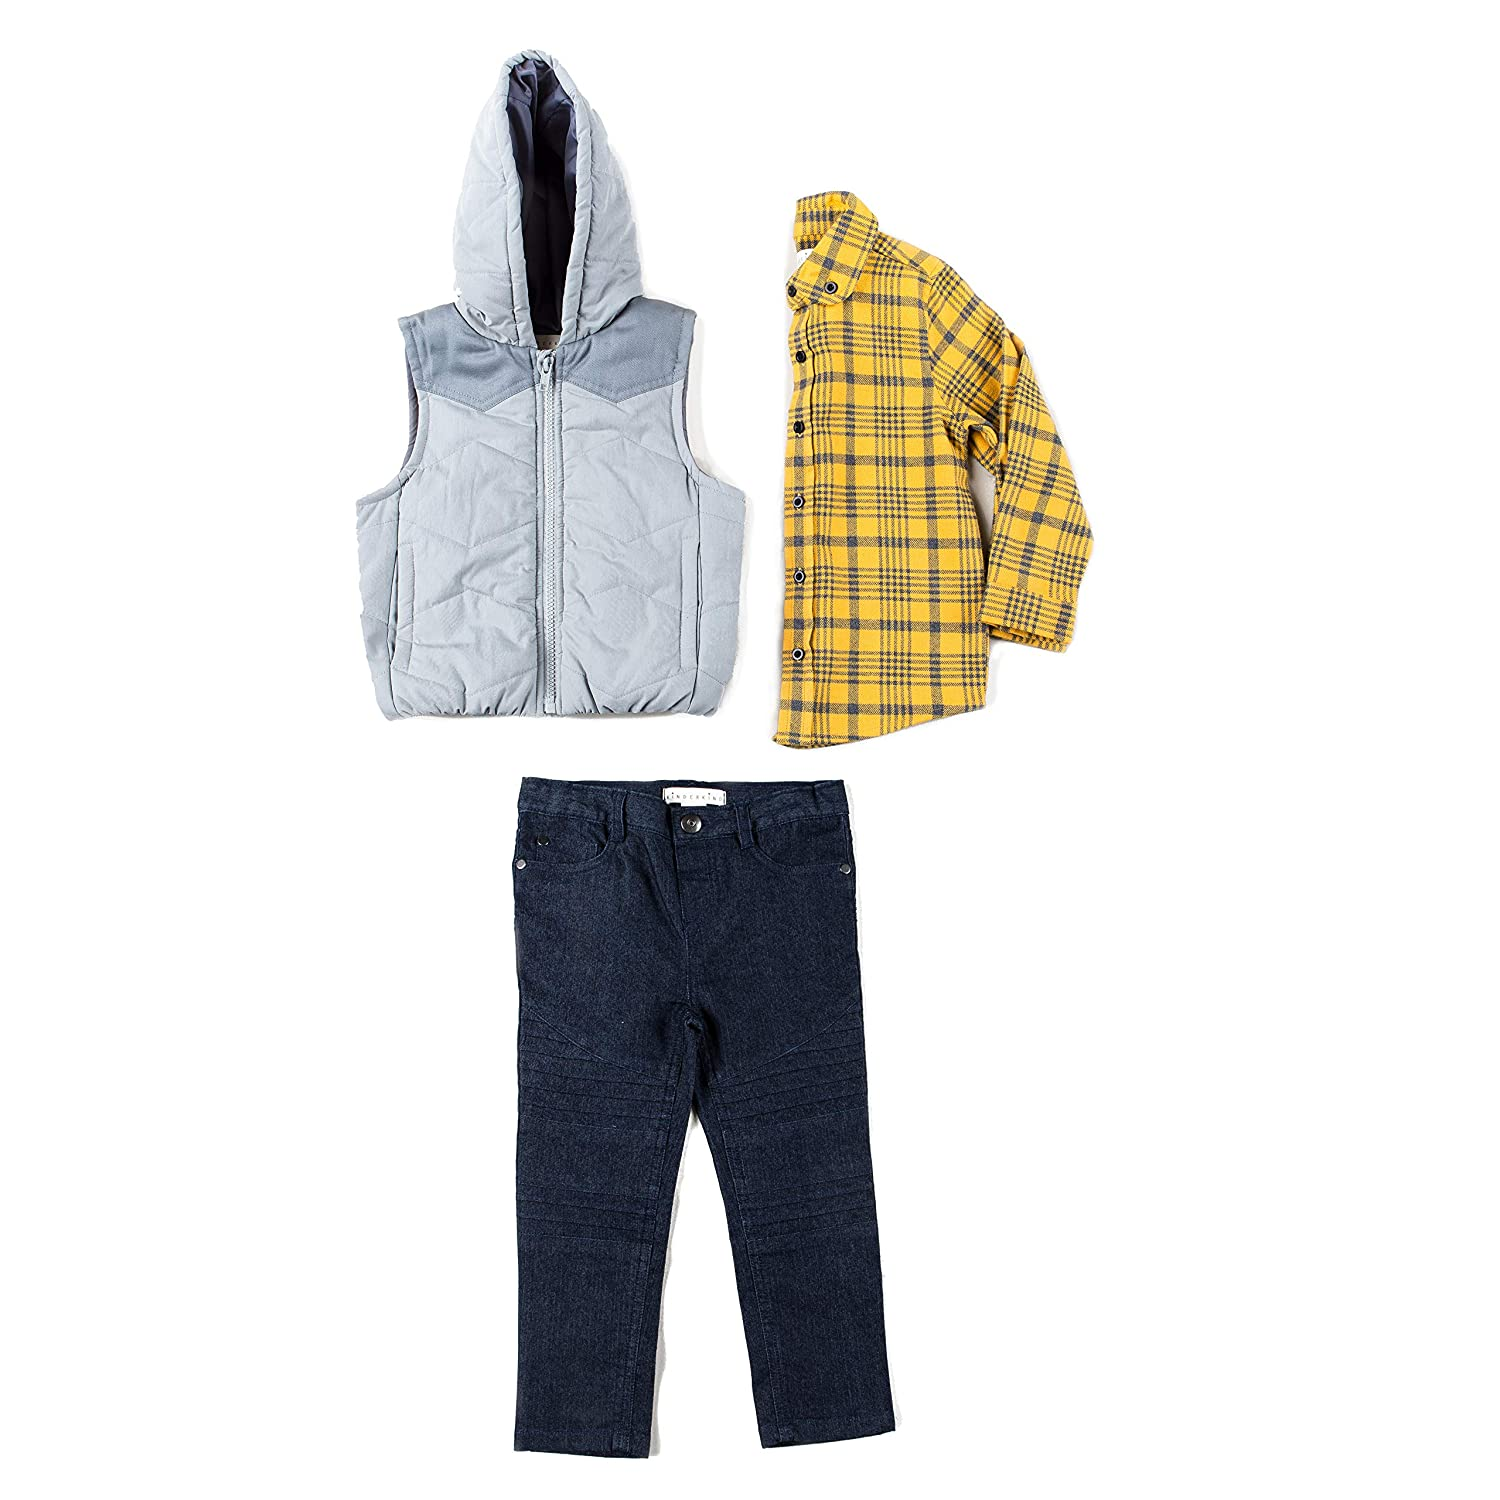 Kinderkind Kids Toddler Boy Puffer Vest, Flannel Shirt and Denim Pants Set